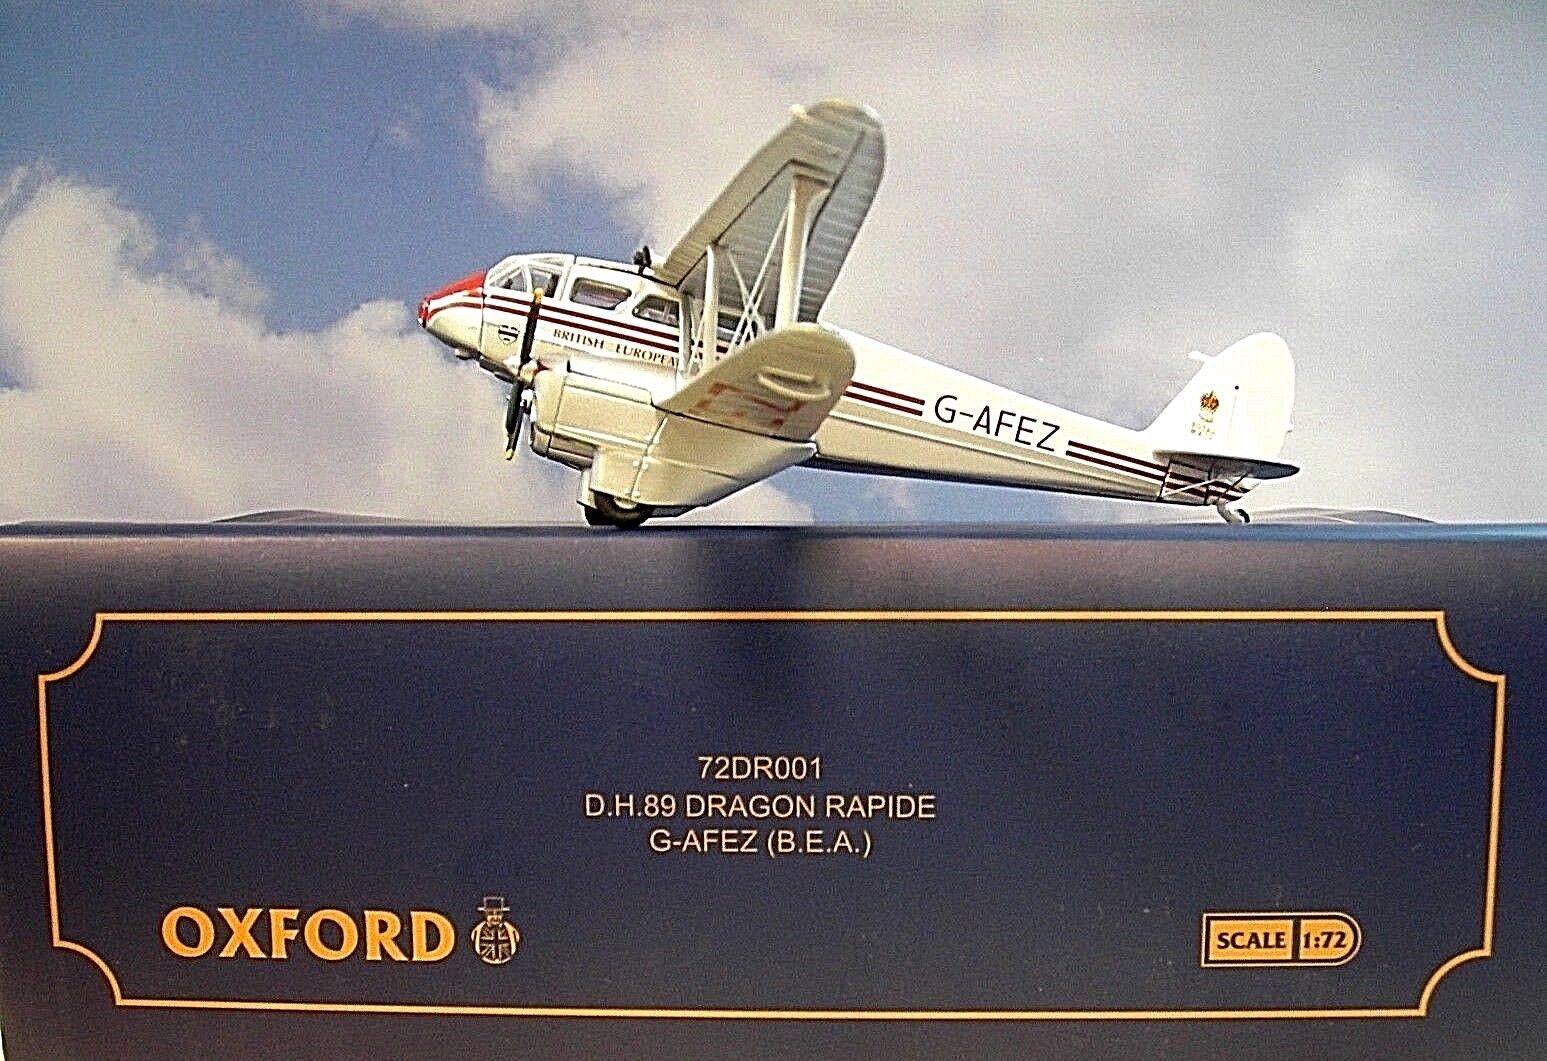 Oxford Wings 1 72  D.H.89 Dragon Rapide BEA G-AFEZ 72DR001 + Herpa Wings Katalog